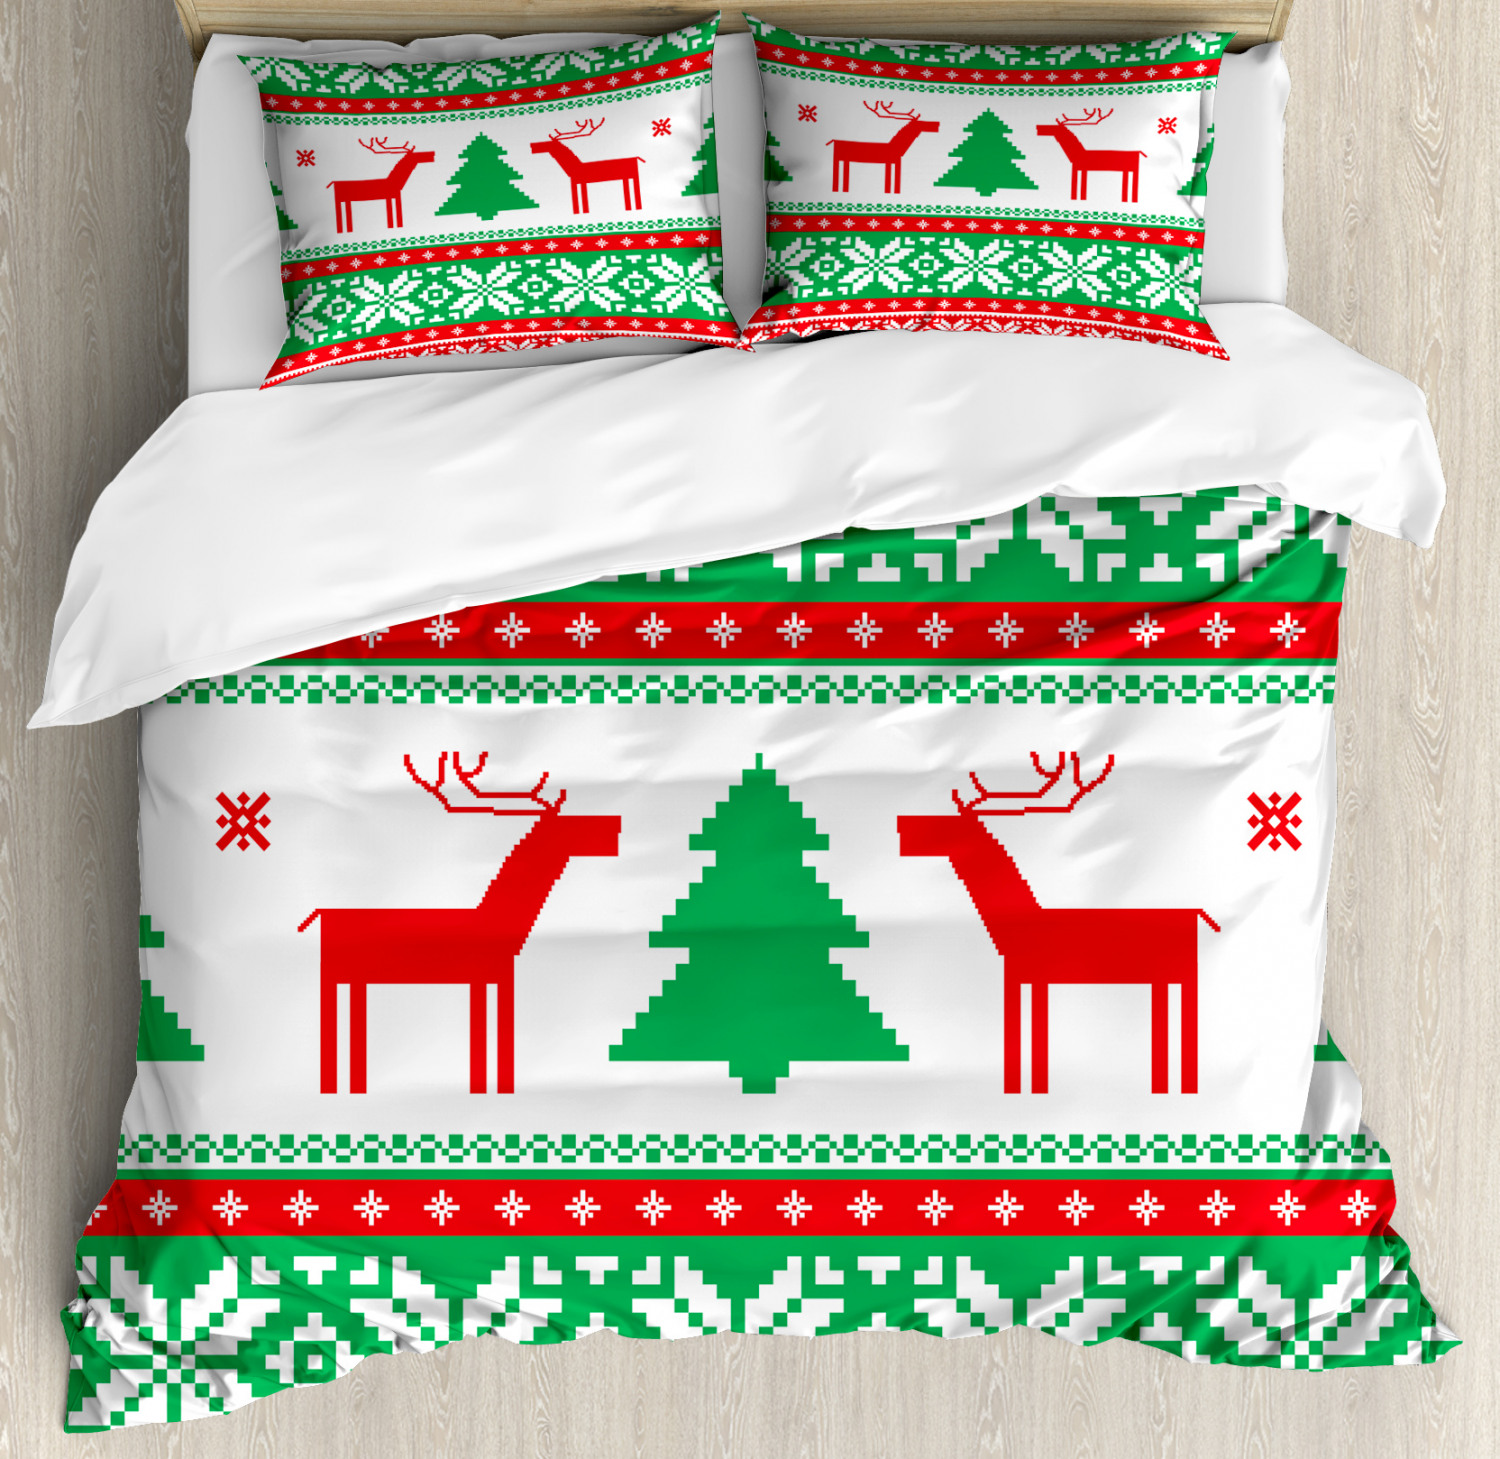 Christmas Duvet Cover Set with Pillow Shams Holiday Season Deer Print